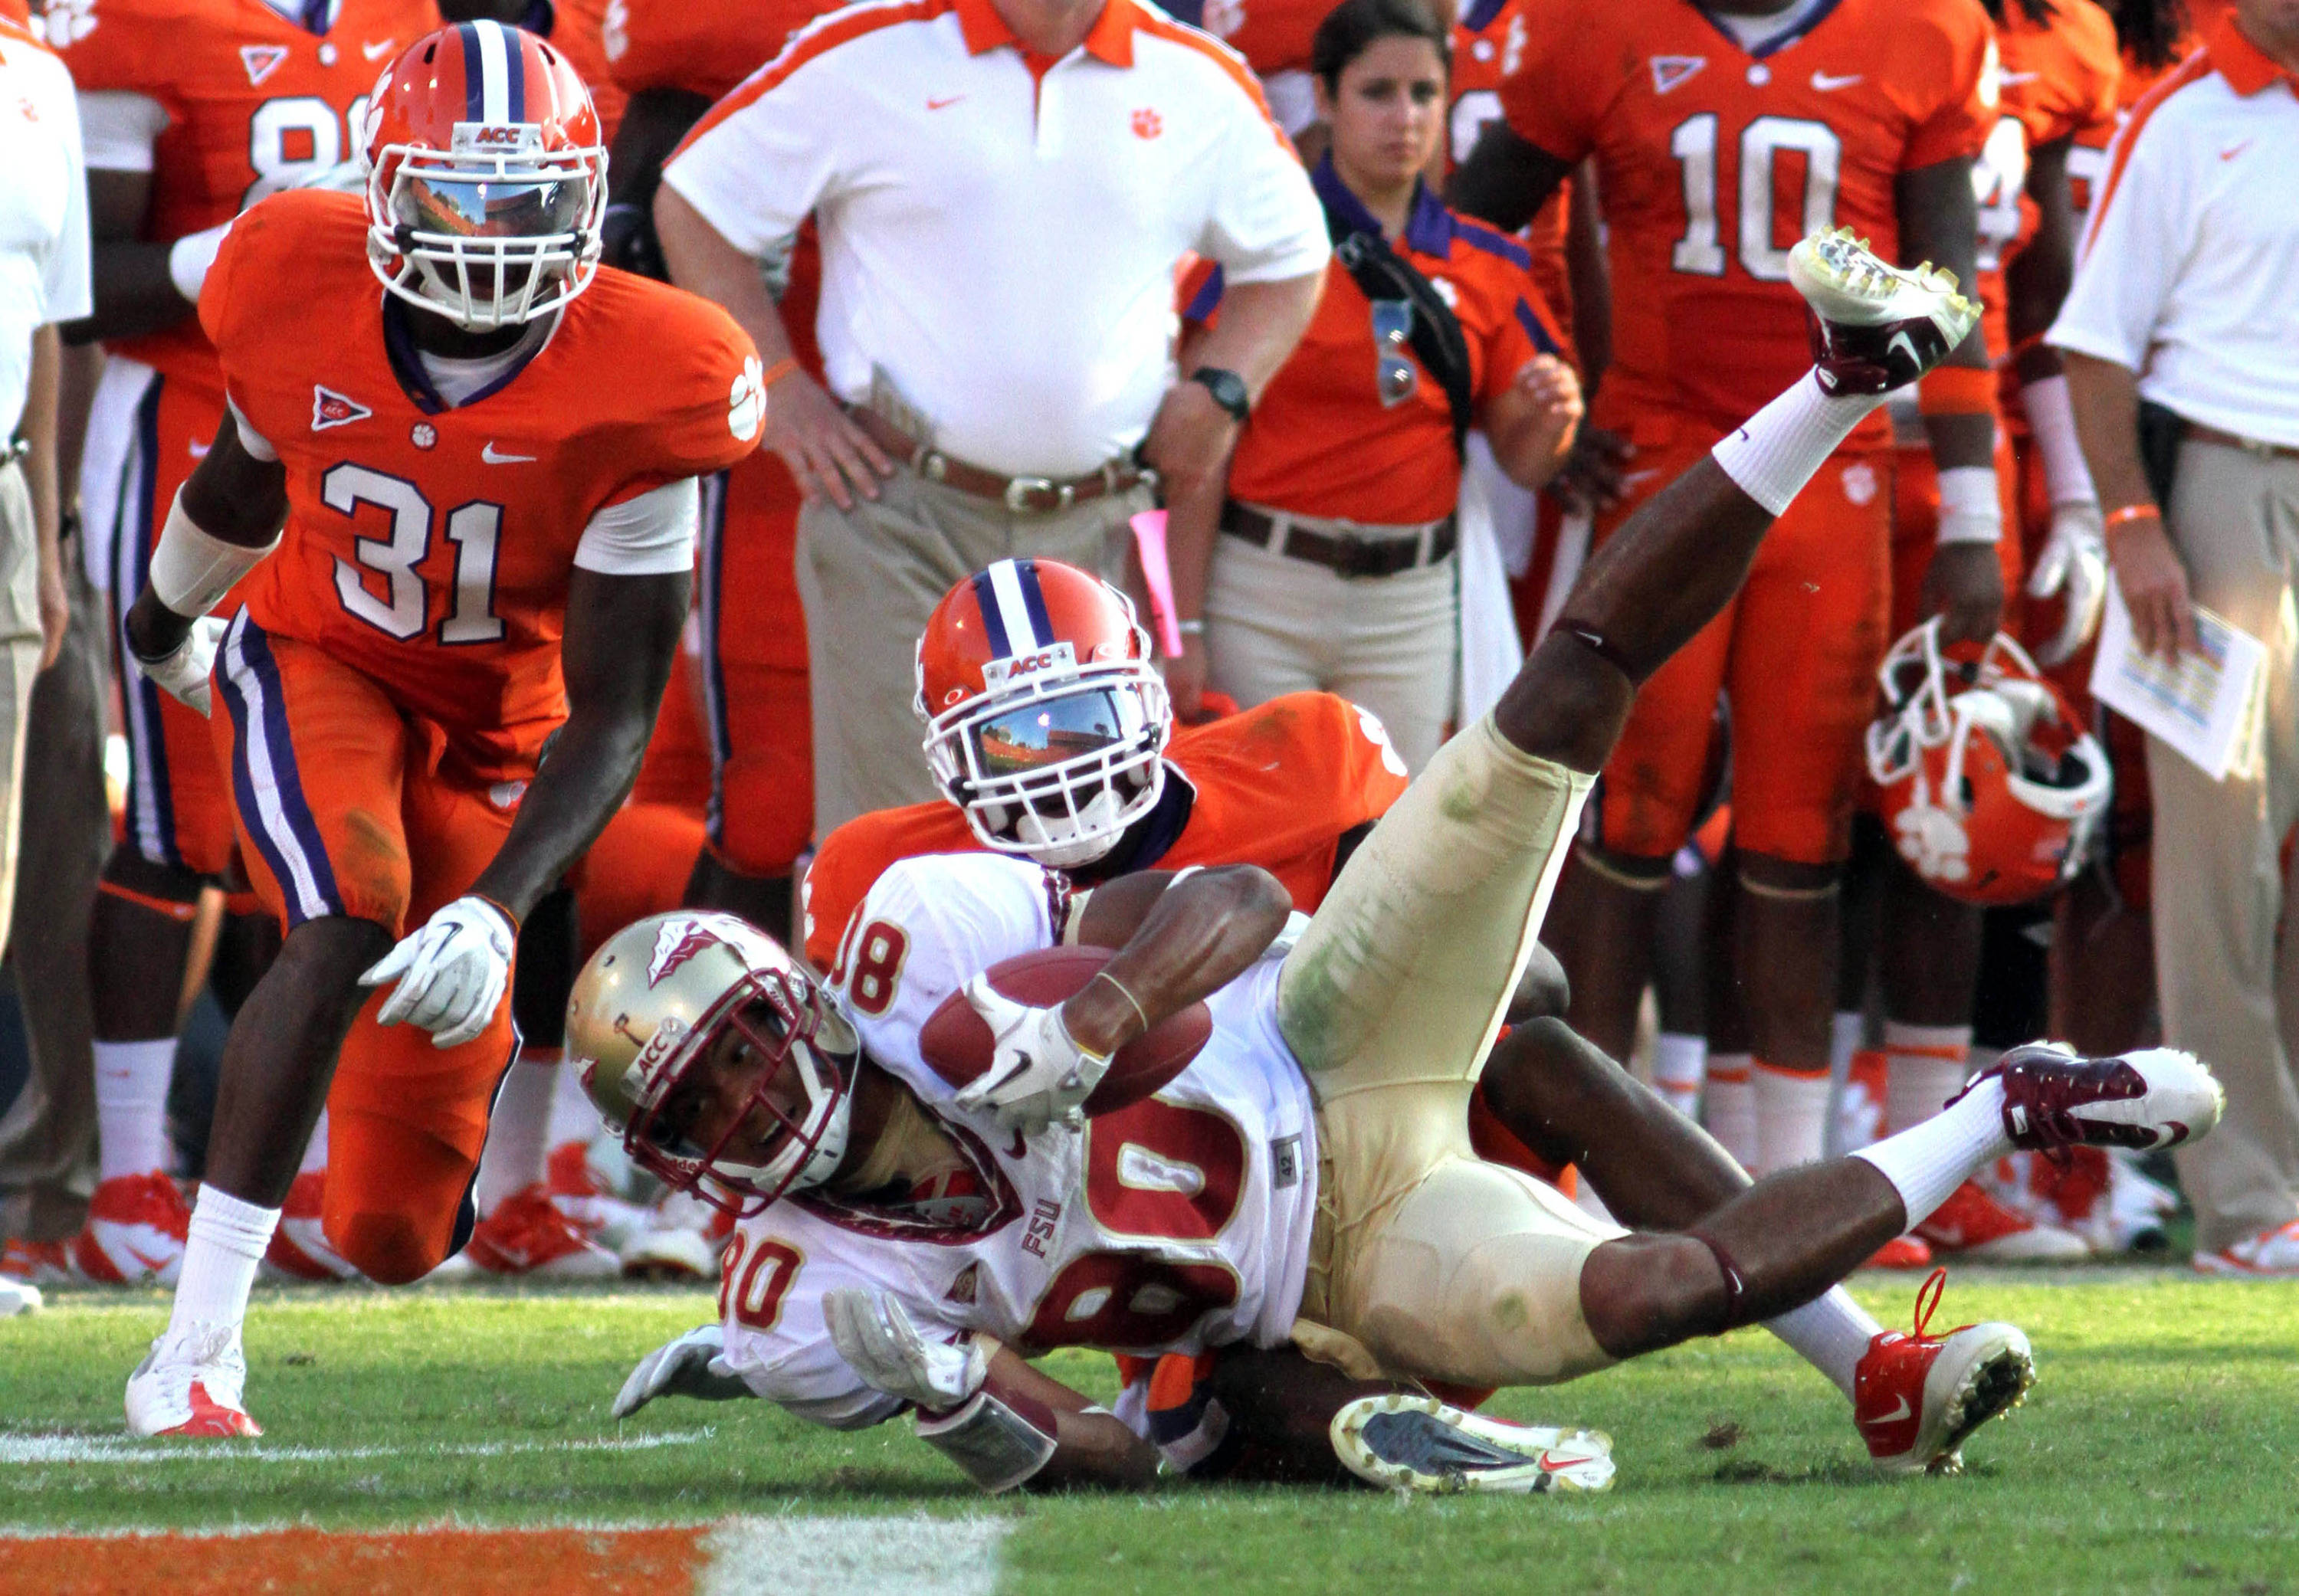 Sep 24, 2011; Clemson, SC, USA; Clemson Tigers cornerback Bashaud Breeland (17) brings down Florida State Seminoles wide receiver Rashad Greene (80) during the third quarter at Clemson Memorial Stadium. Tigers won 35-30. Mandatory Credit: Joshua S. Kelly-USA TODAY Sports